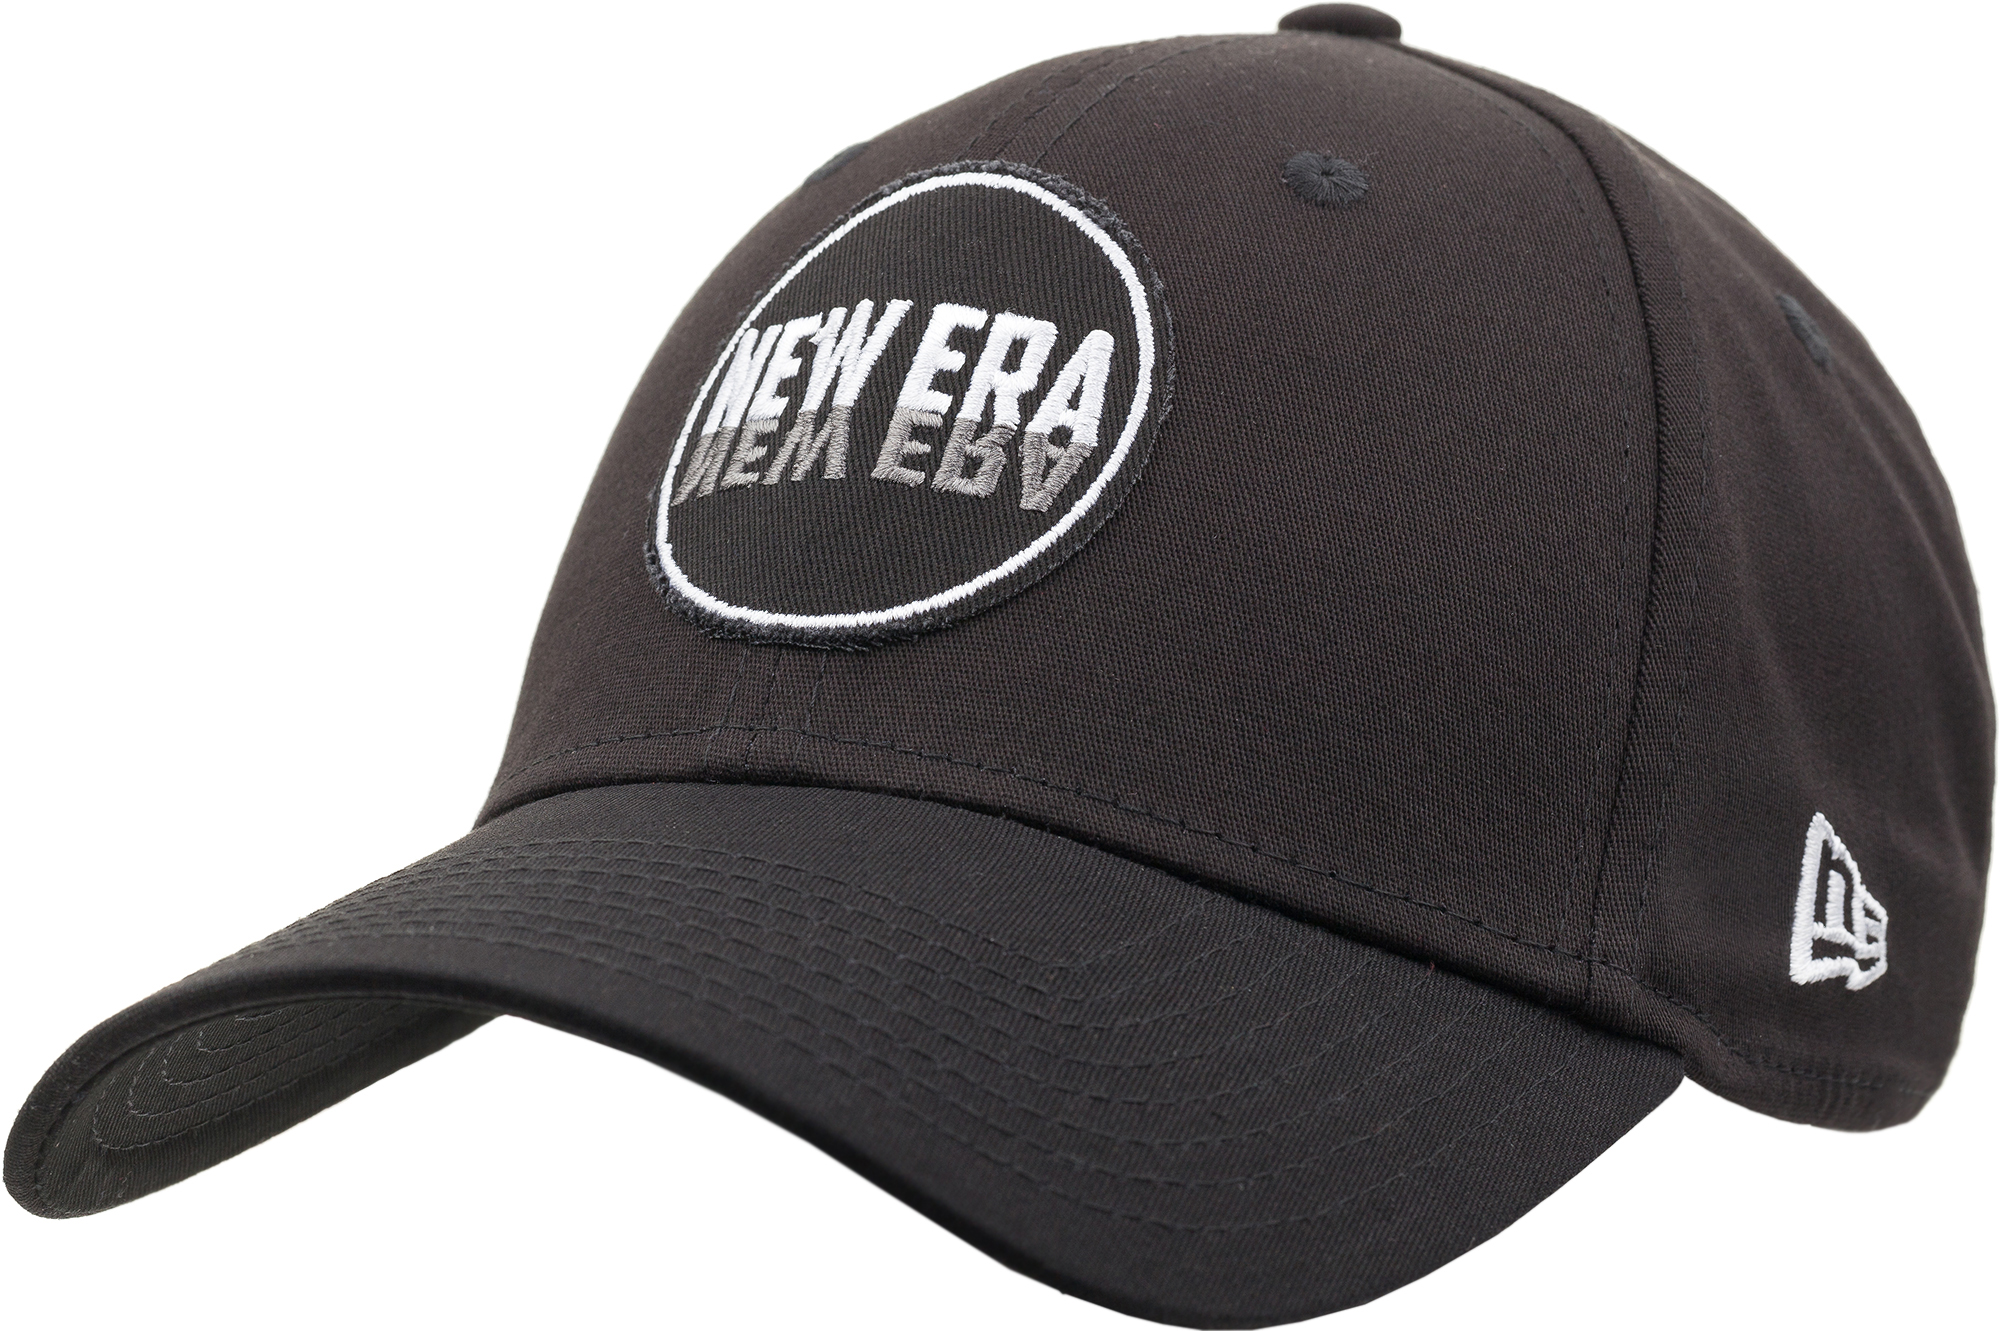 New Era Бейсболка New Era 322 Ne Round Patch 39Thirty, размер 54-57 new era шапка для мальчиков new era ne cuff pom размер 54 55